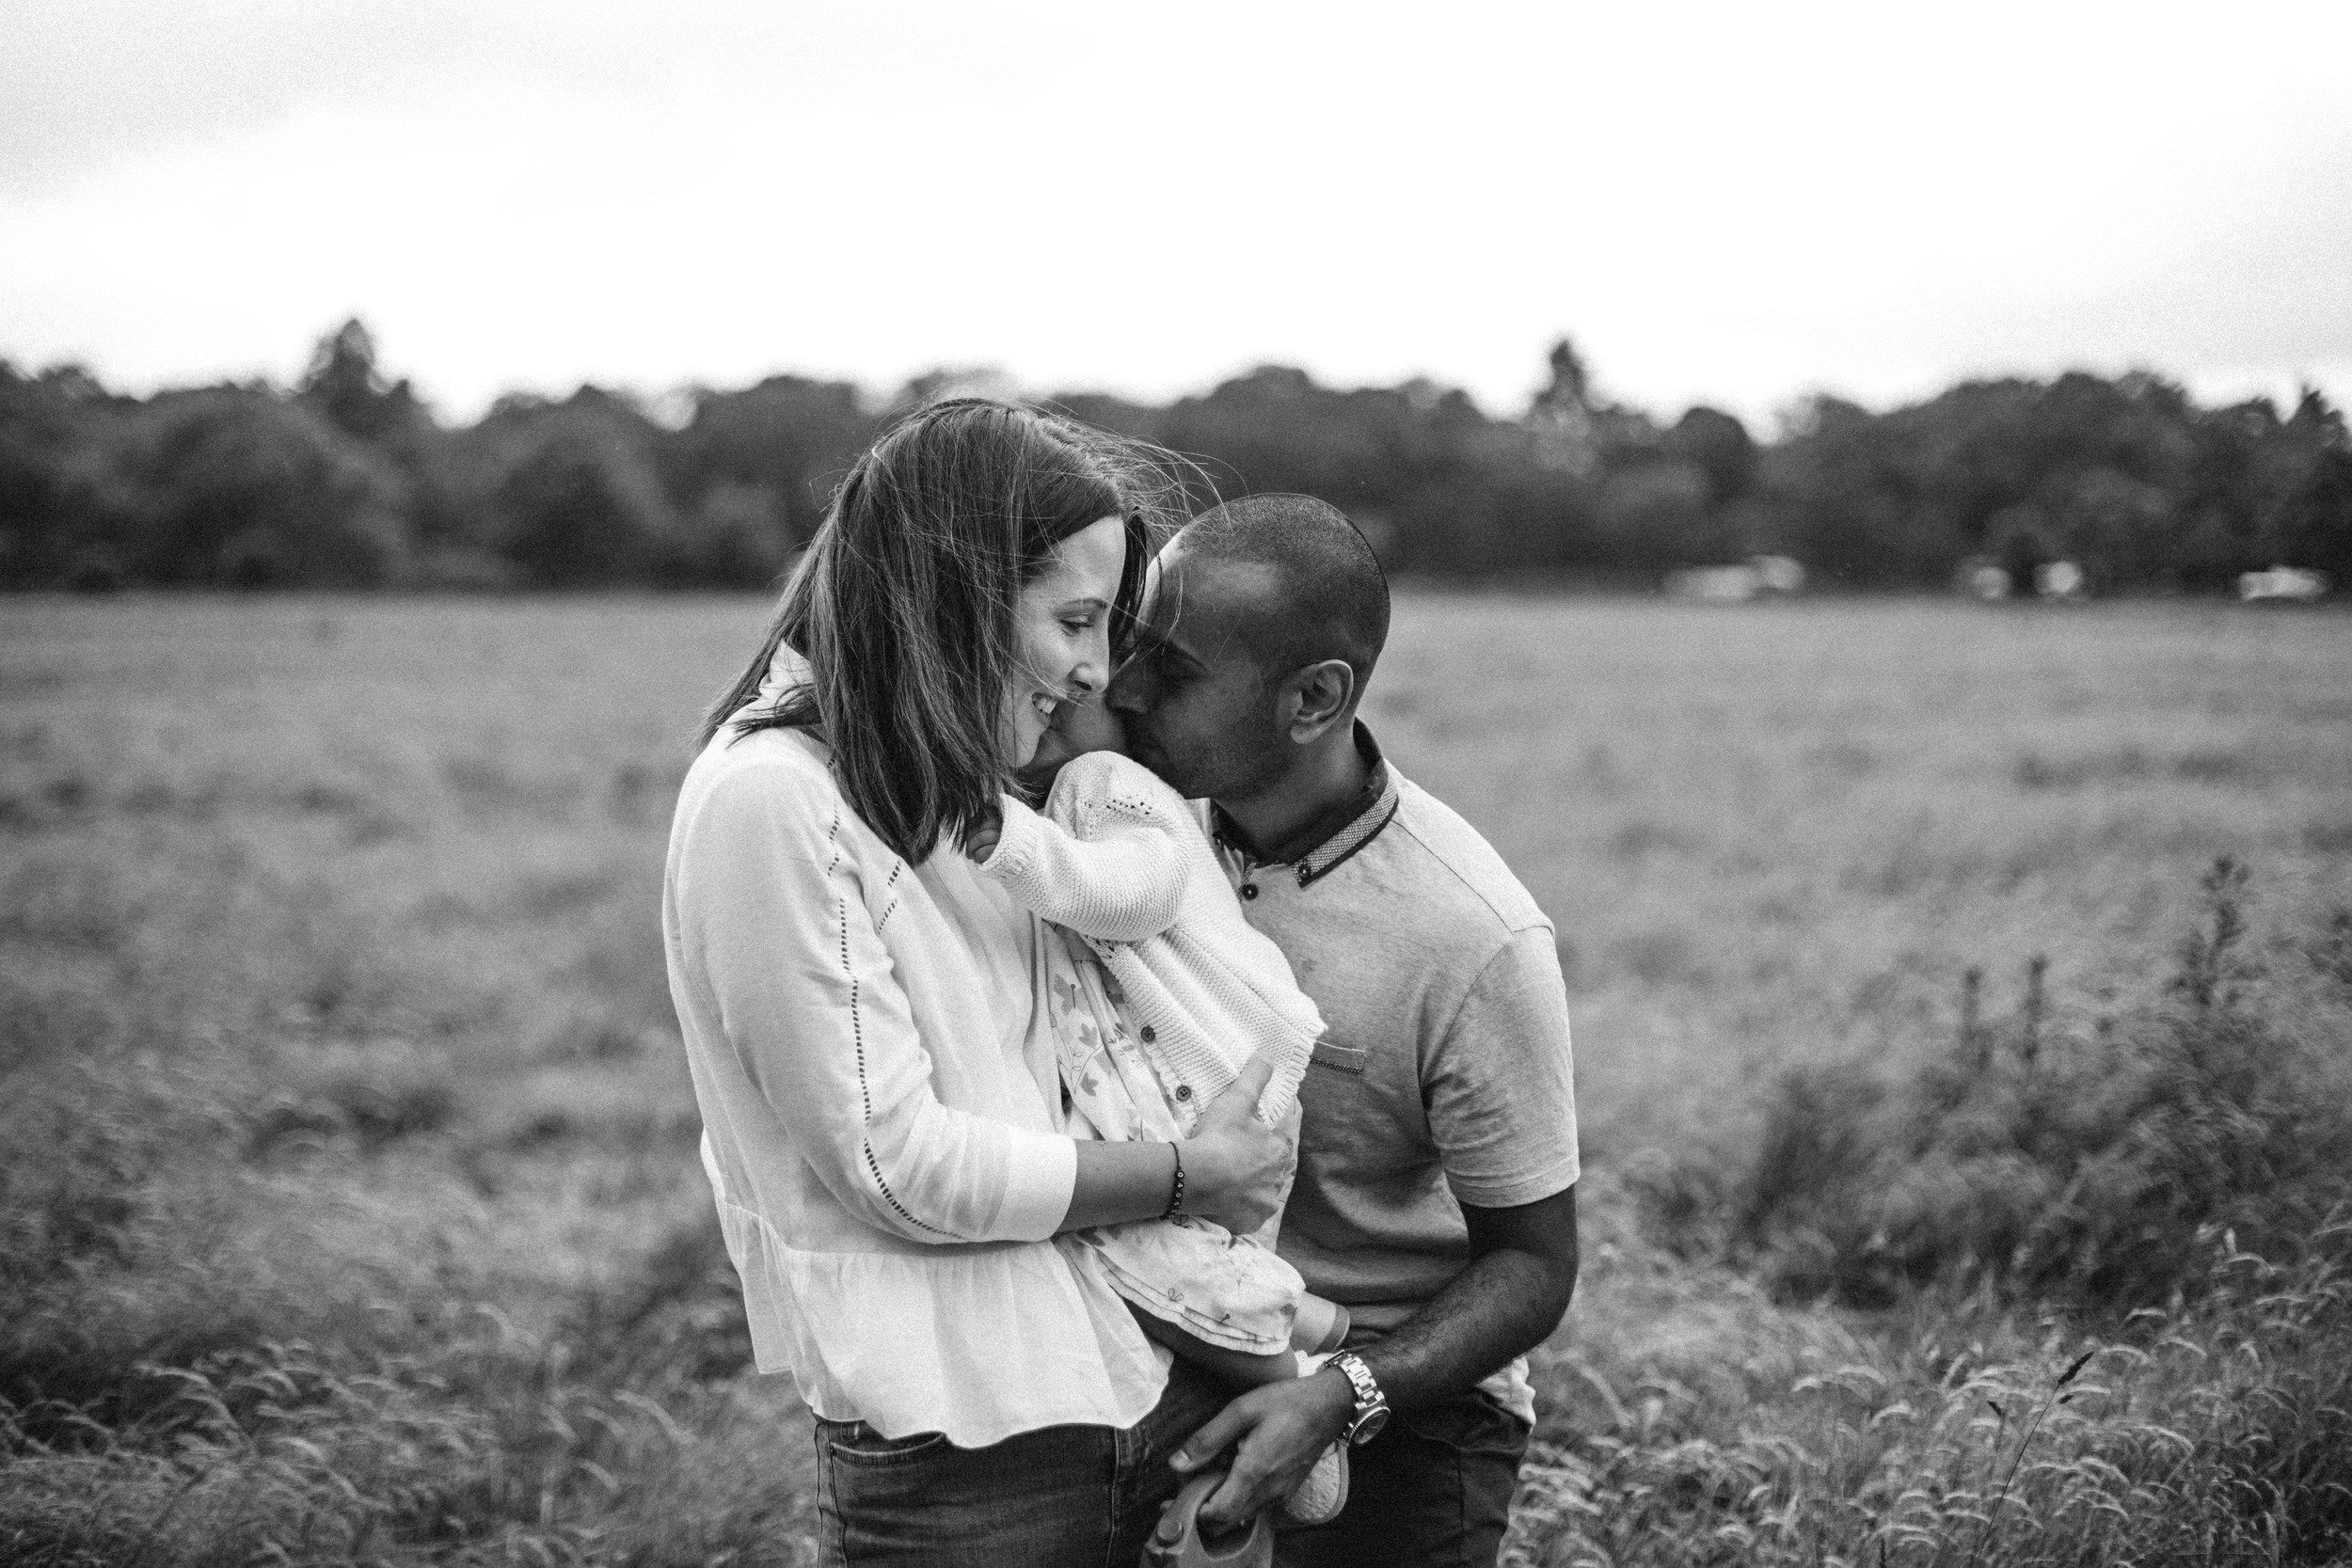 LittleKin_Photography_Family_Photoshoot_Richmond_hollyandjay-32.jpg